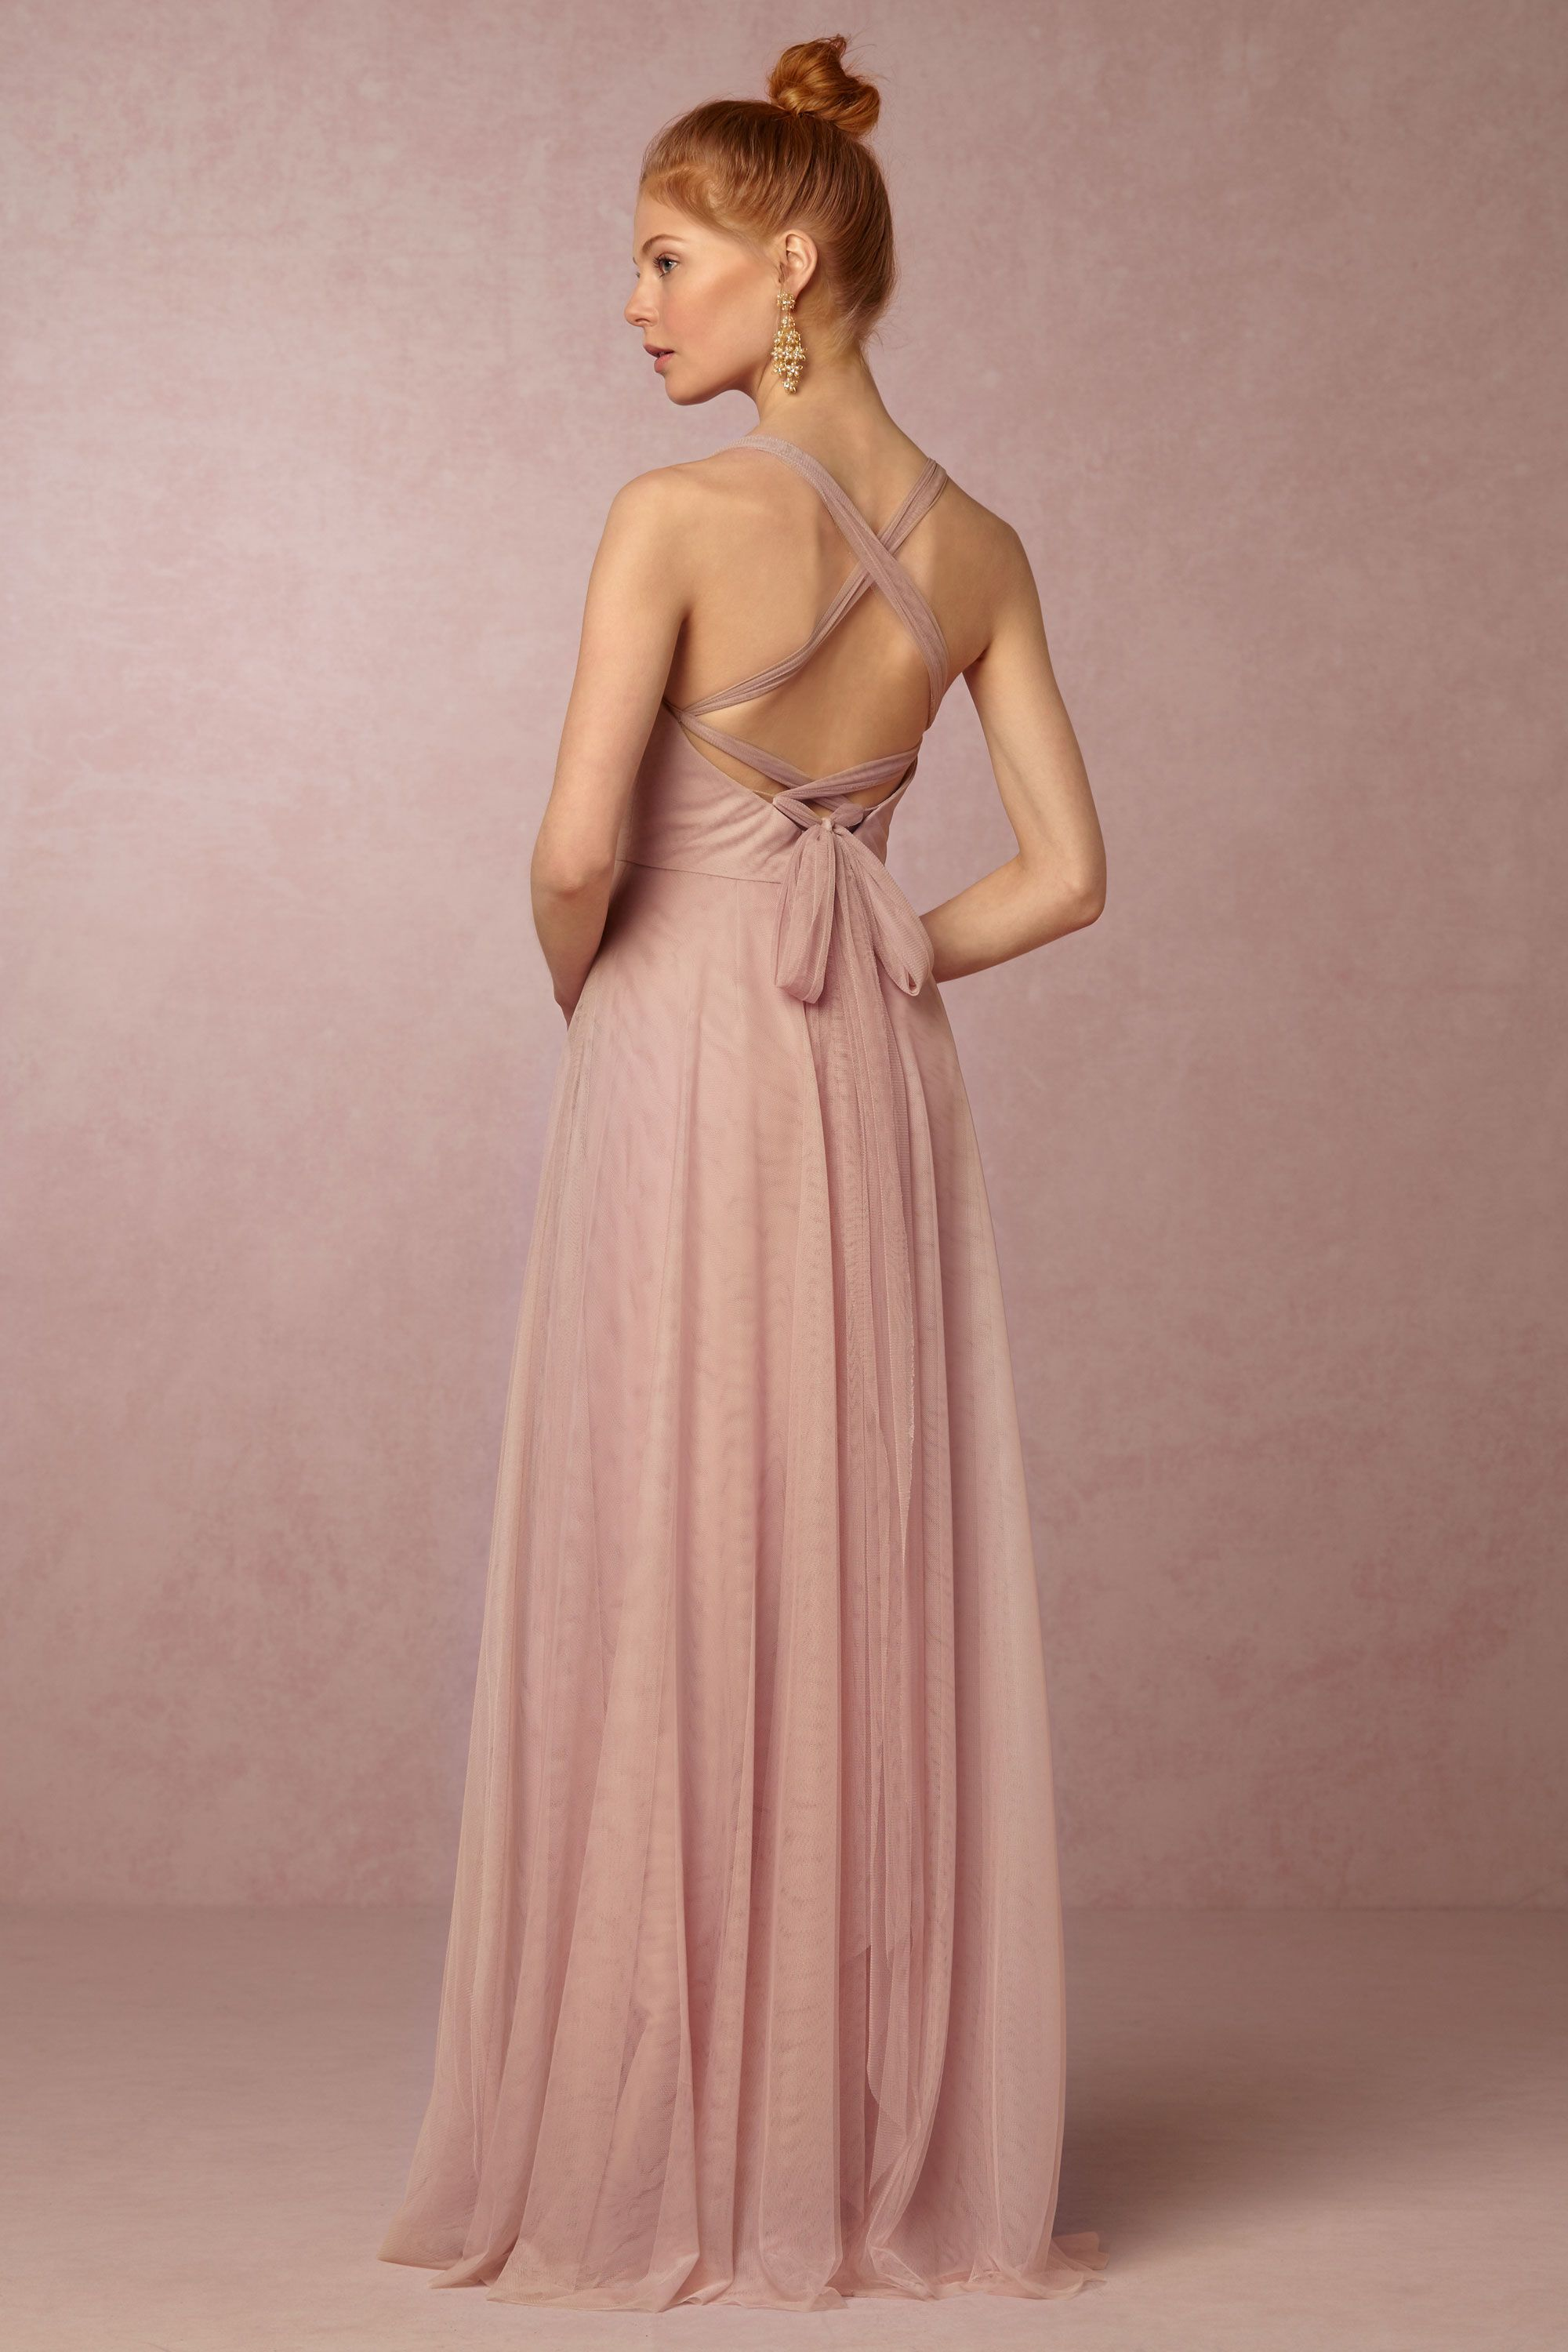 Zaria Dress | Blush bridesmaid dresses long, Dresses, Blush